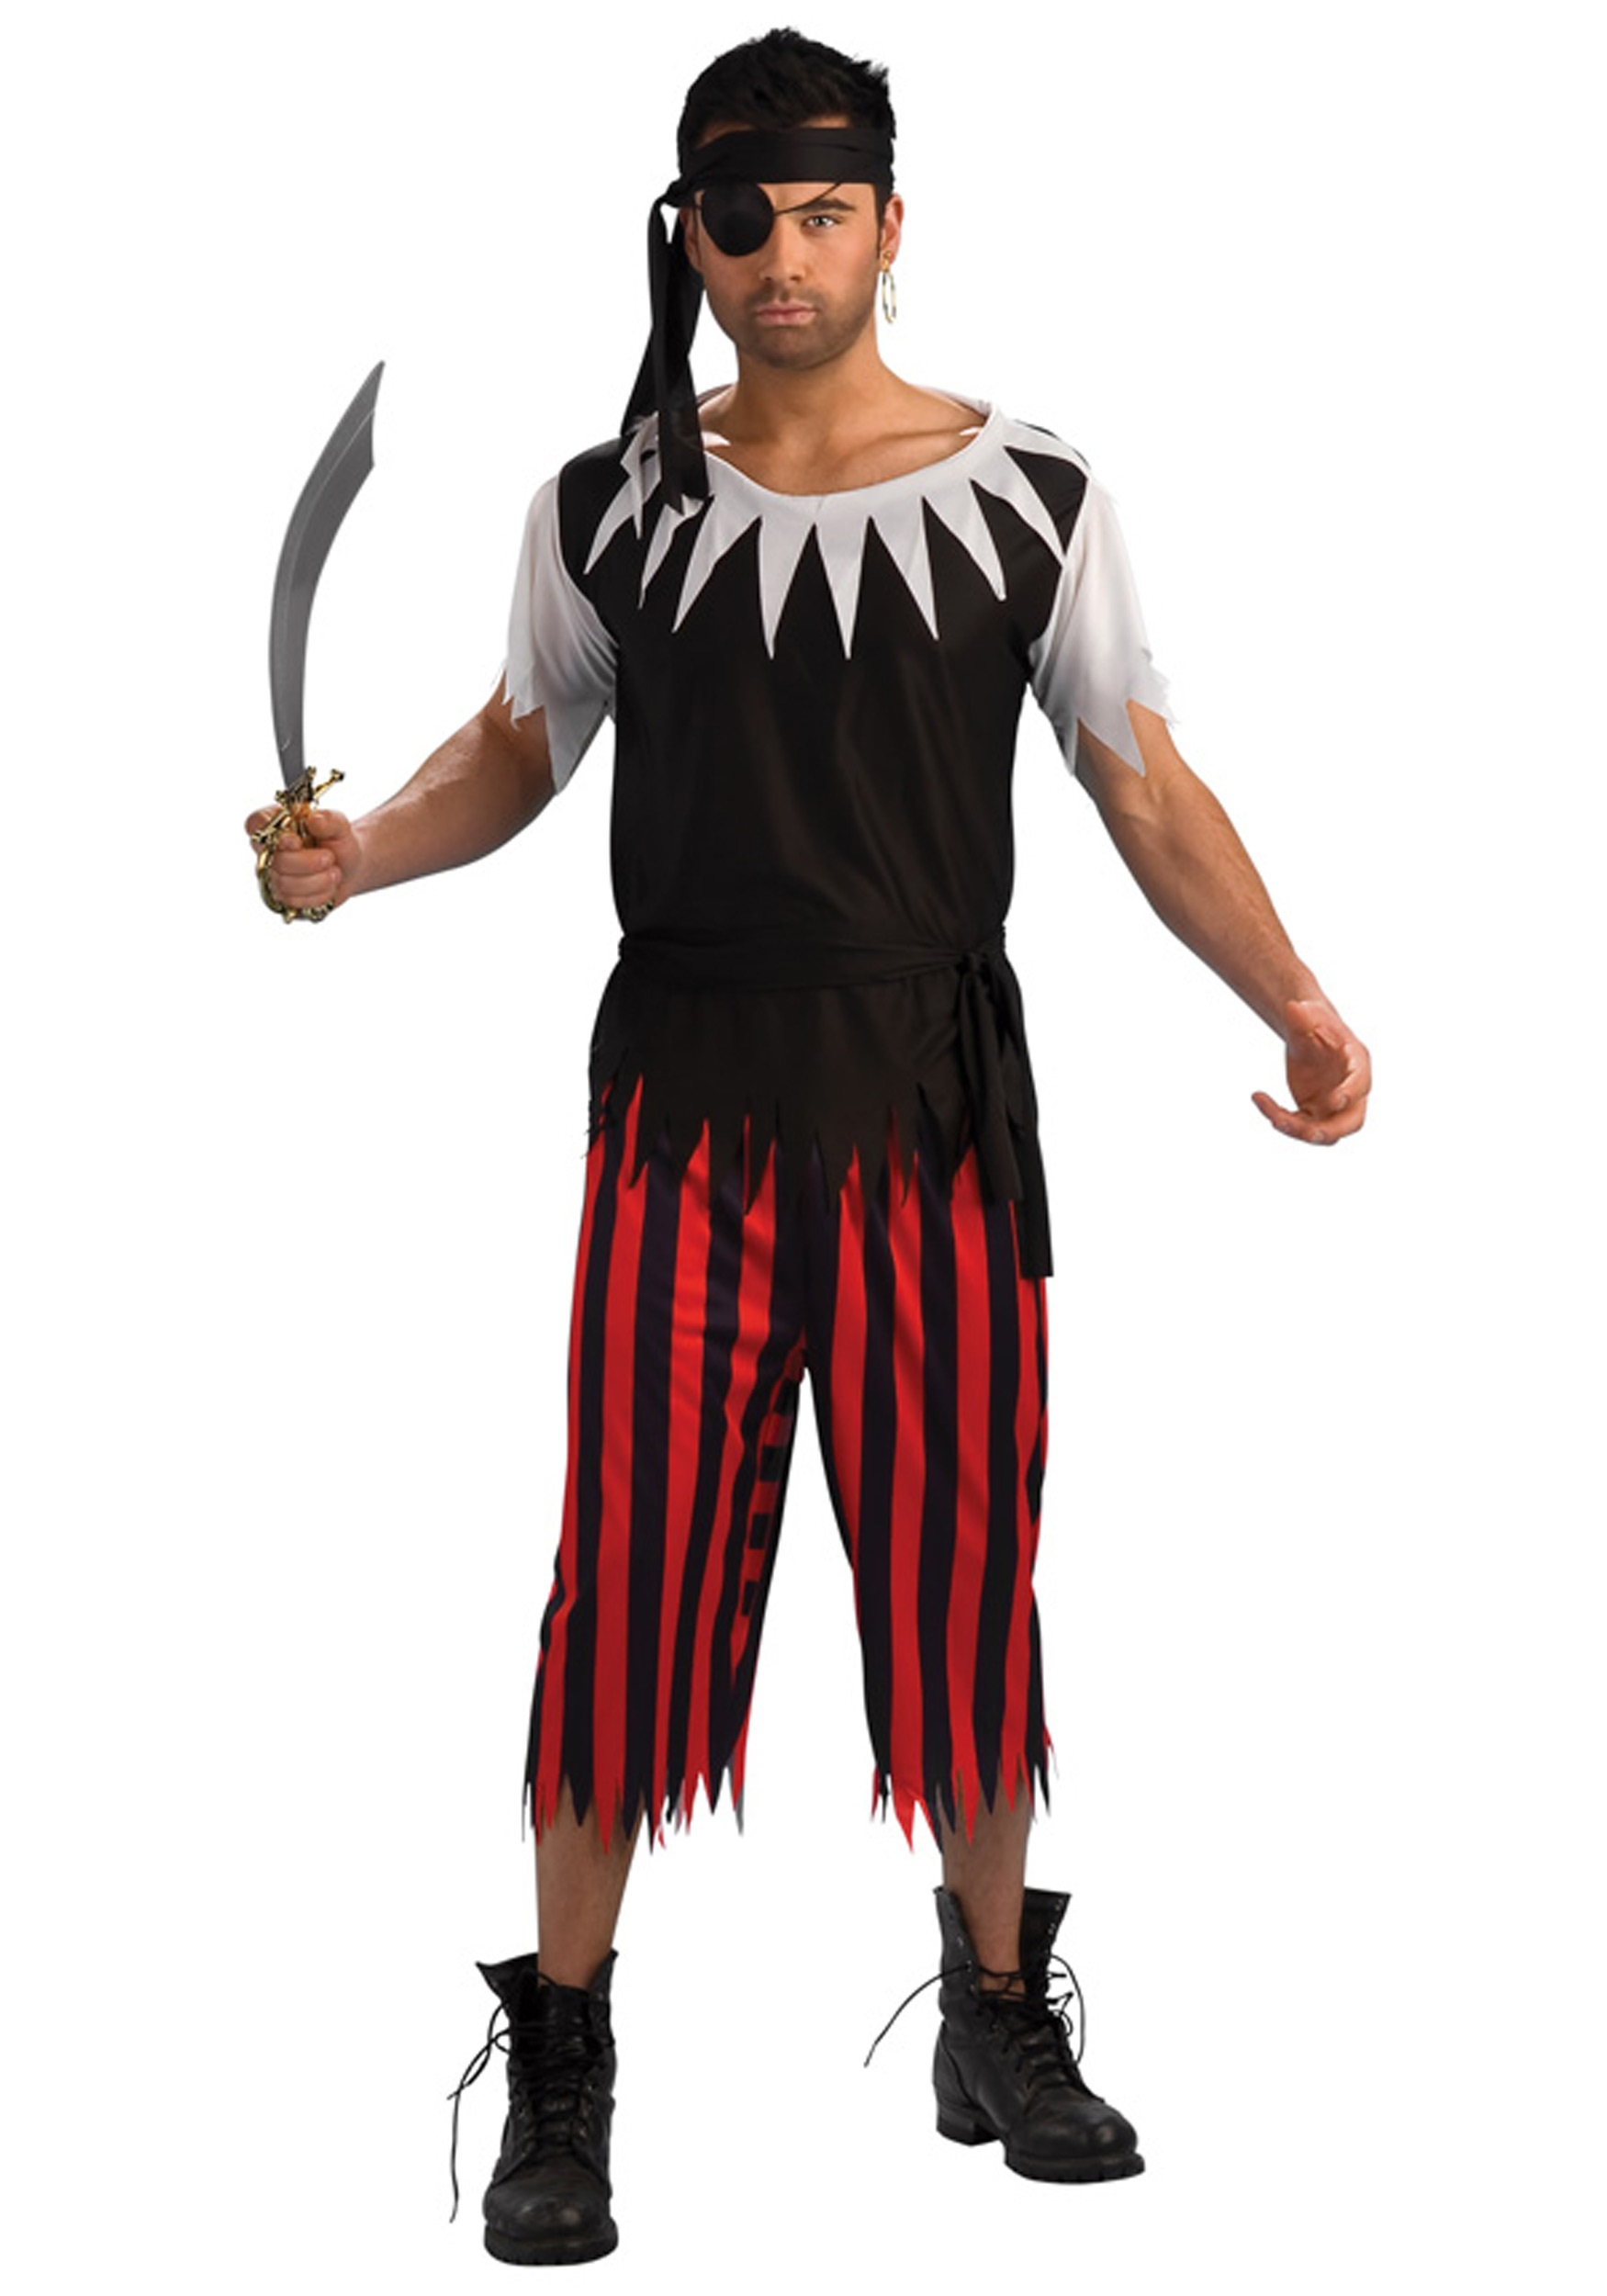 sc 1 st  Halloween Costumes : cheap halloween costume for men  - Germanpascual.Com